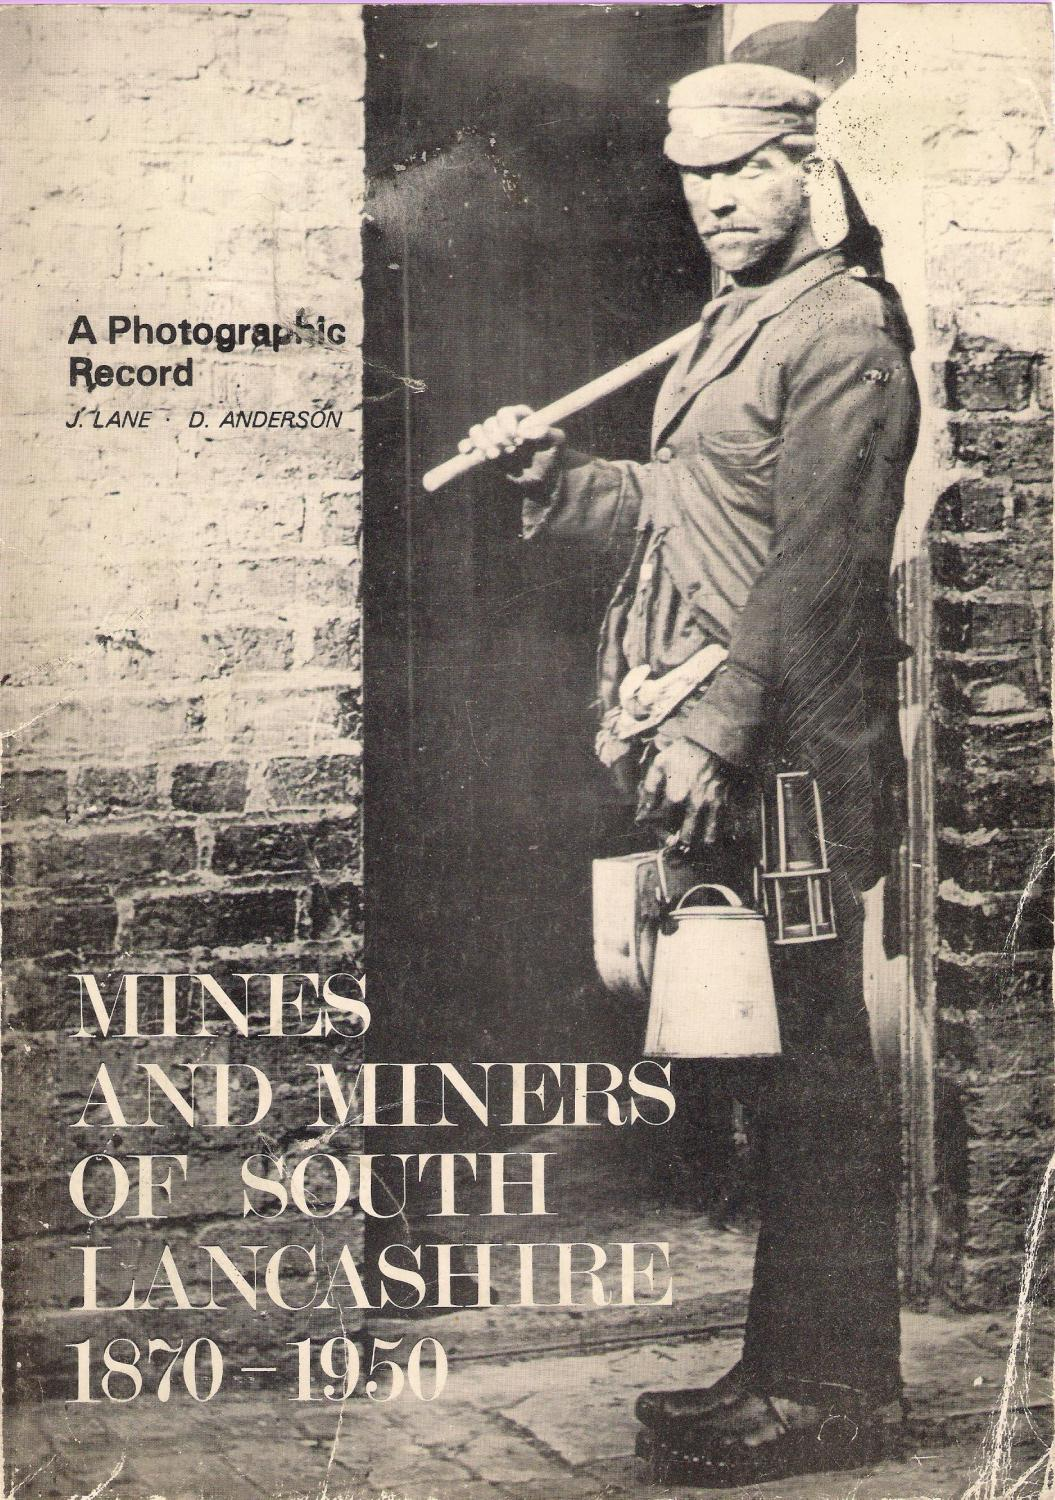 [USED] Mines and Miners of South Lancashire 1870 - 1950; A Photographic Record